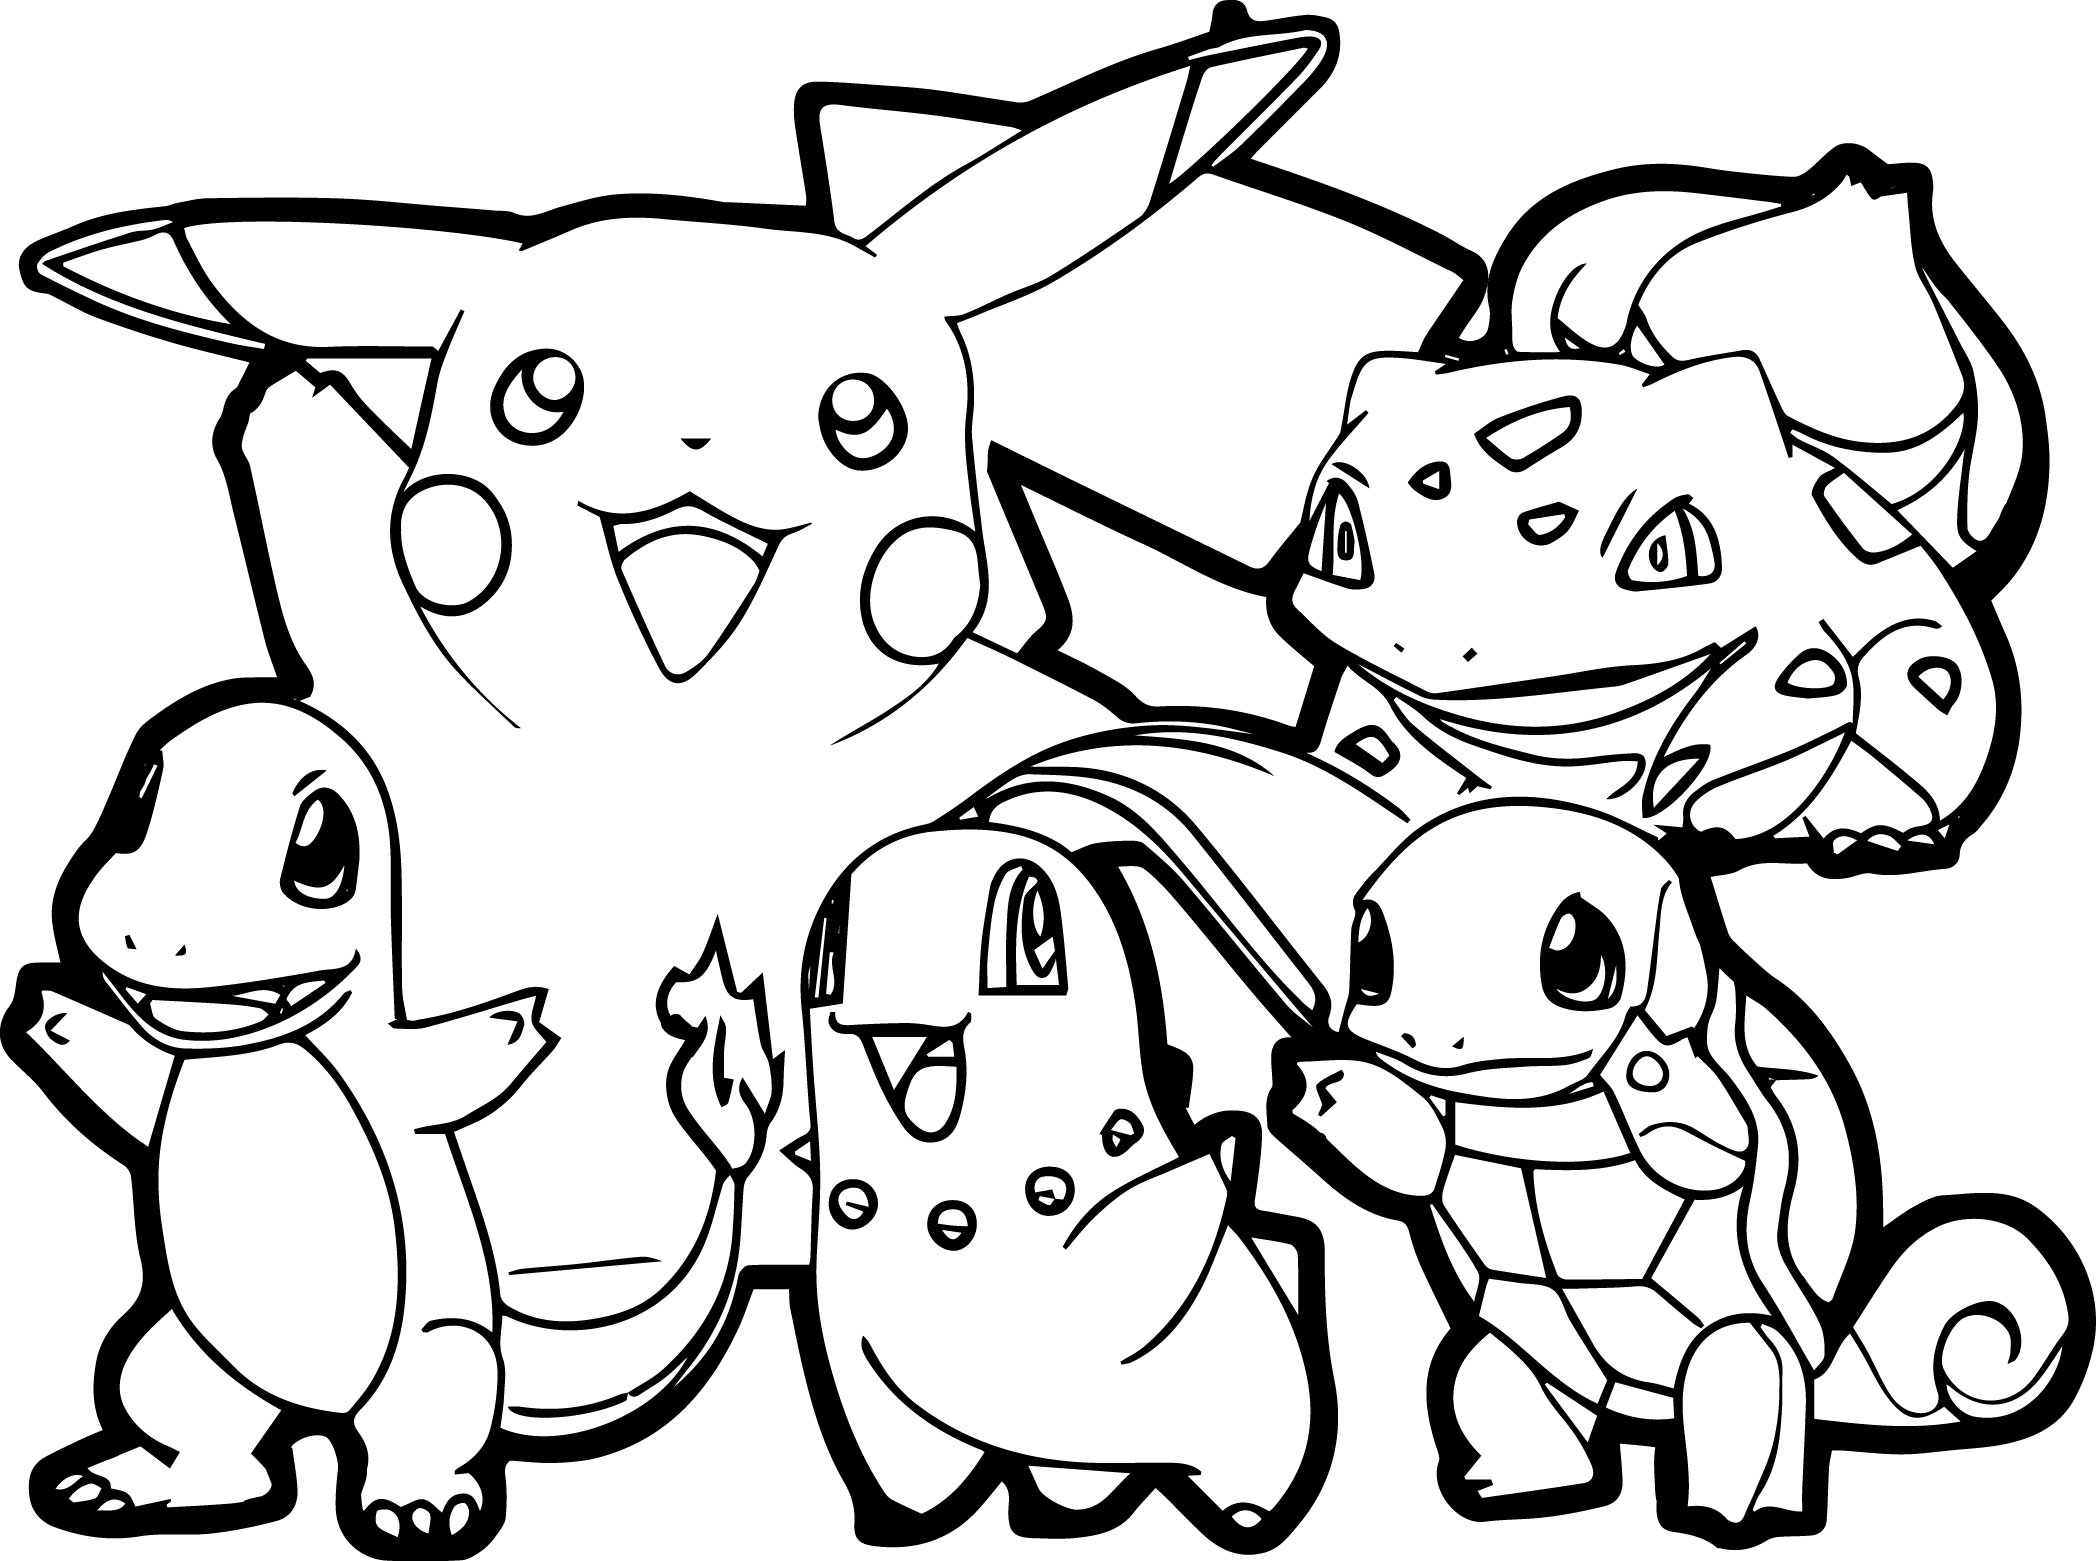 Kid Coloring Pages Pokemon For Children All Pokemon Coloring Pages Kids Coloring Pages